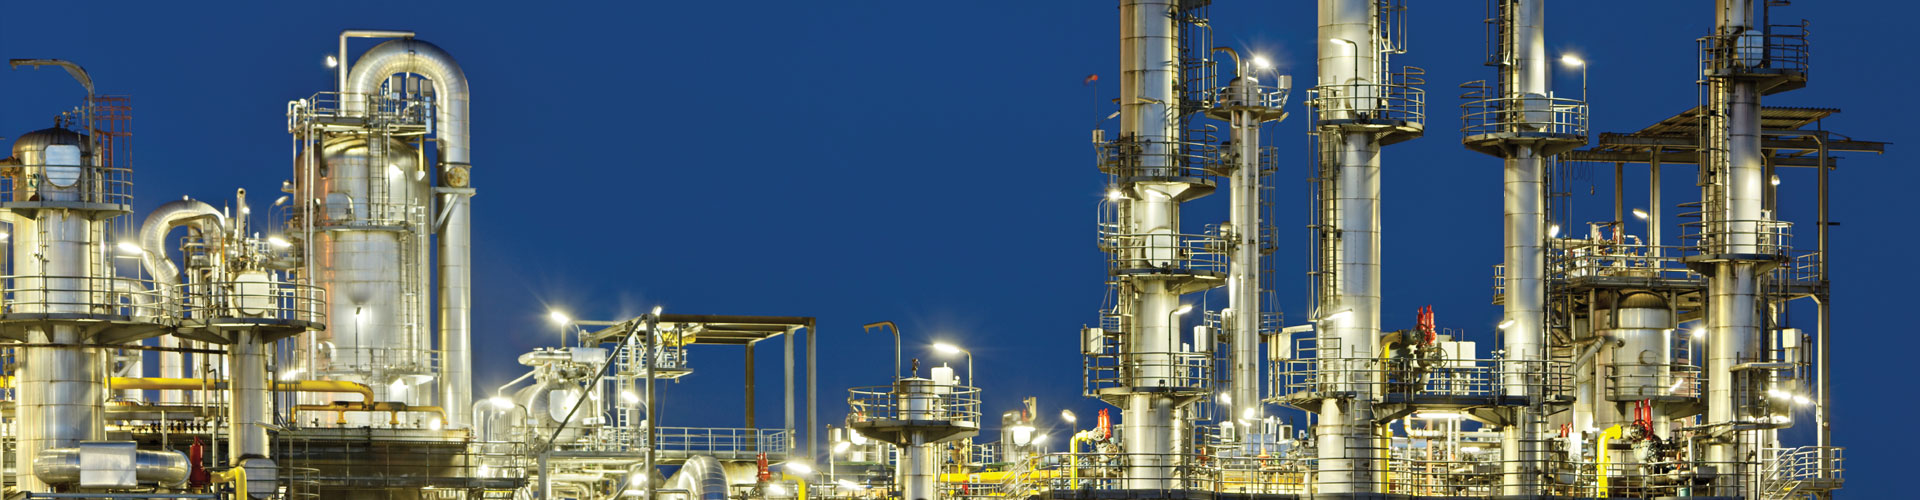 Oil and Gas Refinery Banner